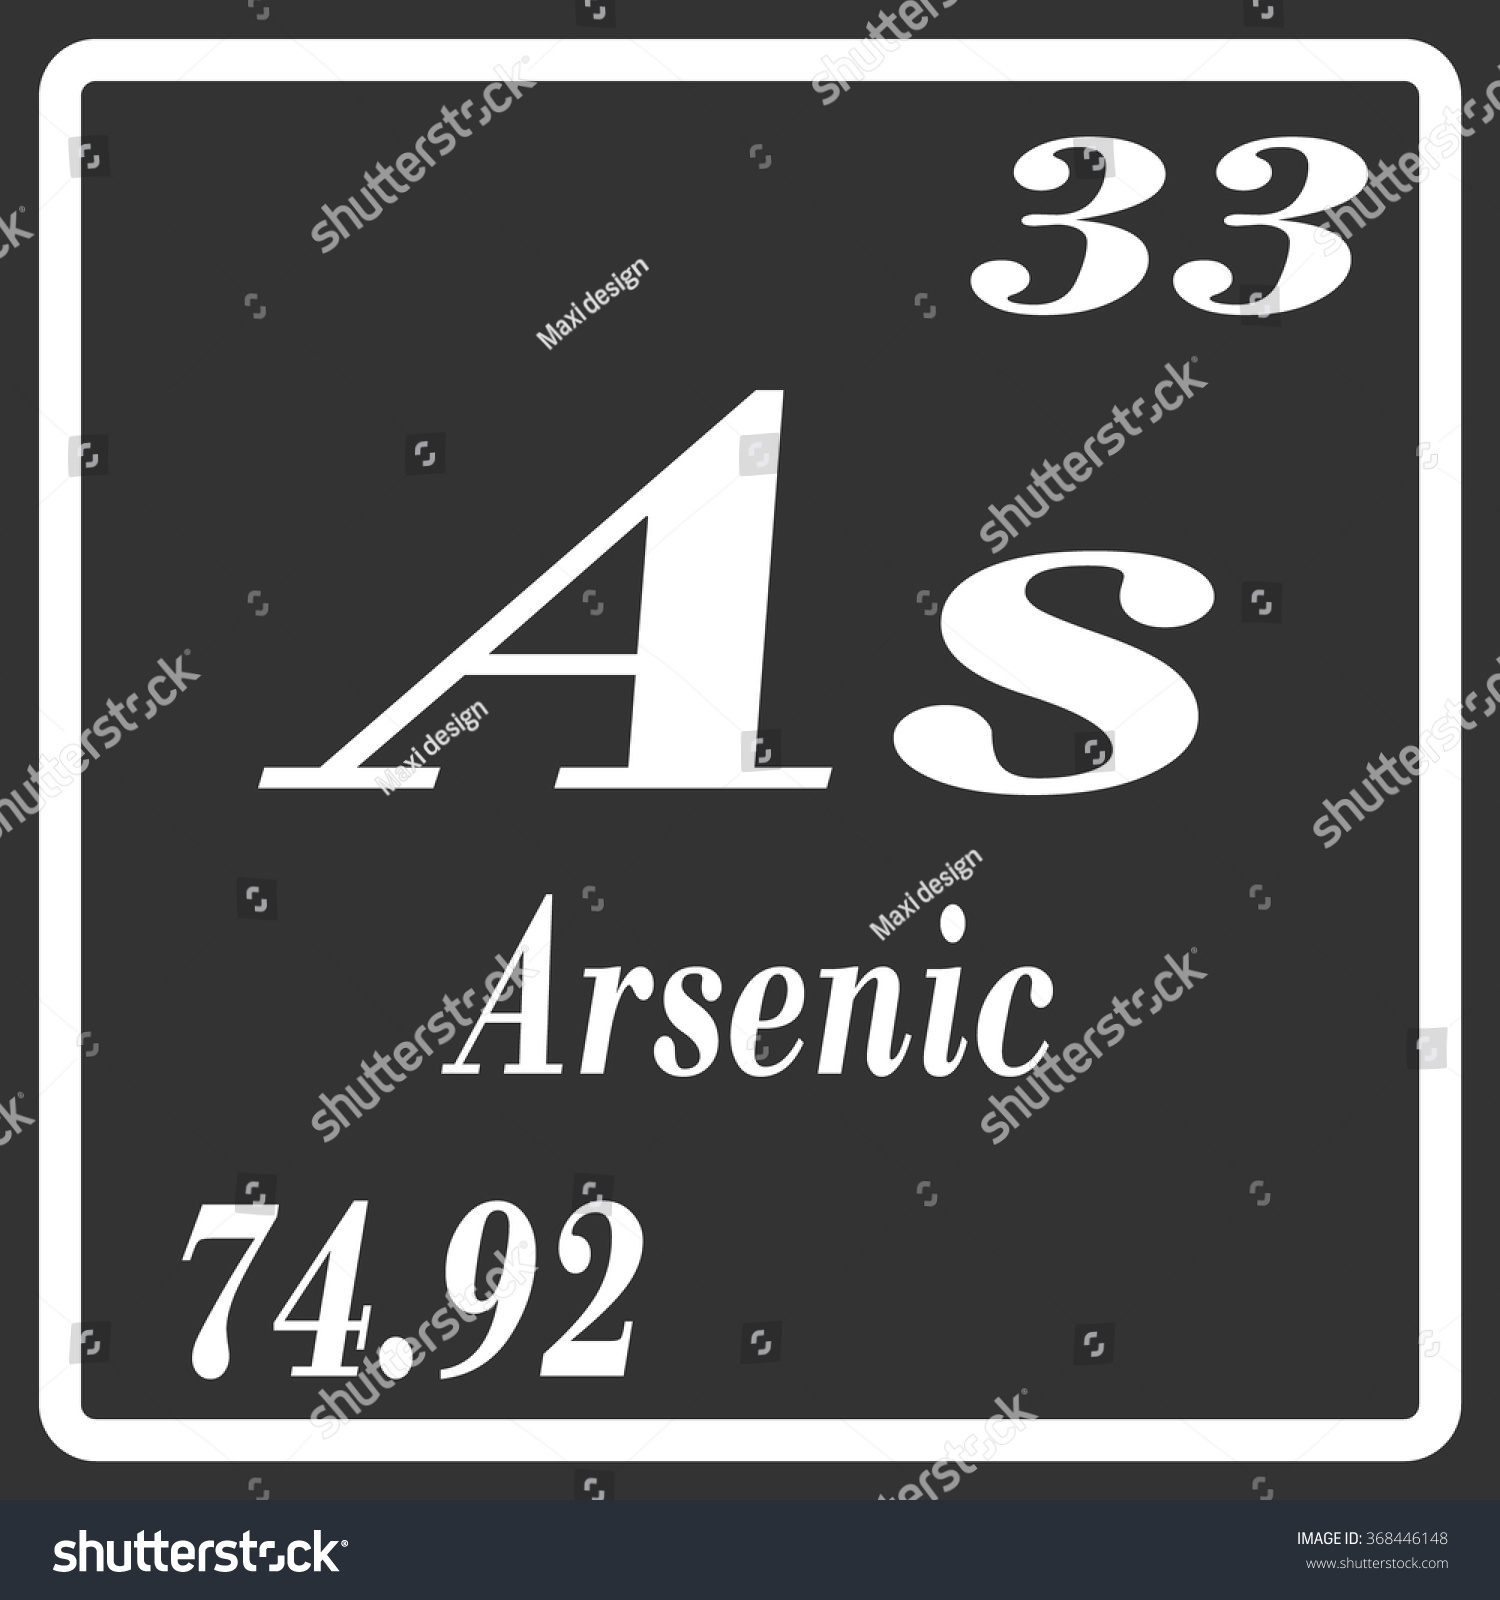 Periodic table elements arsenic stock vector 368446148 shutterstock periodic table of elements arsenic biocorpaavc Image collections